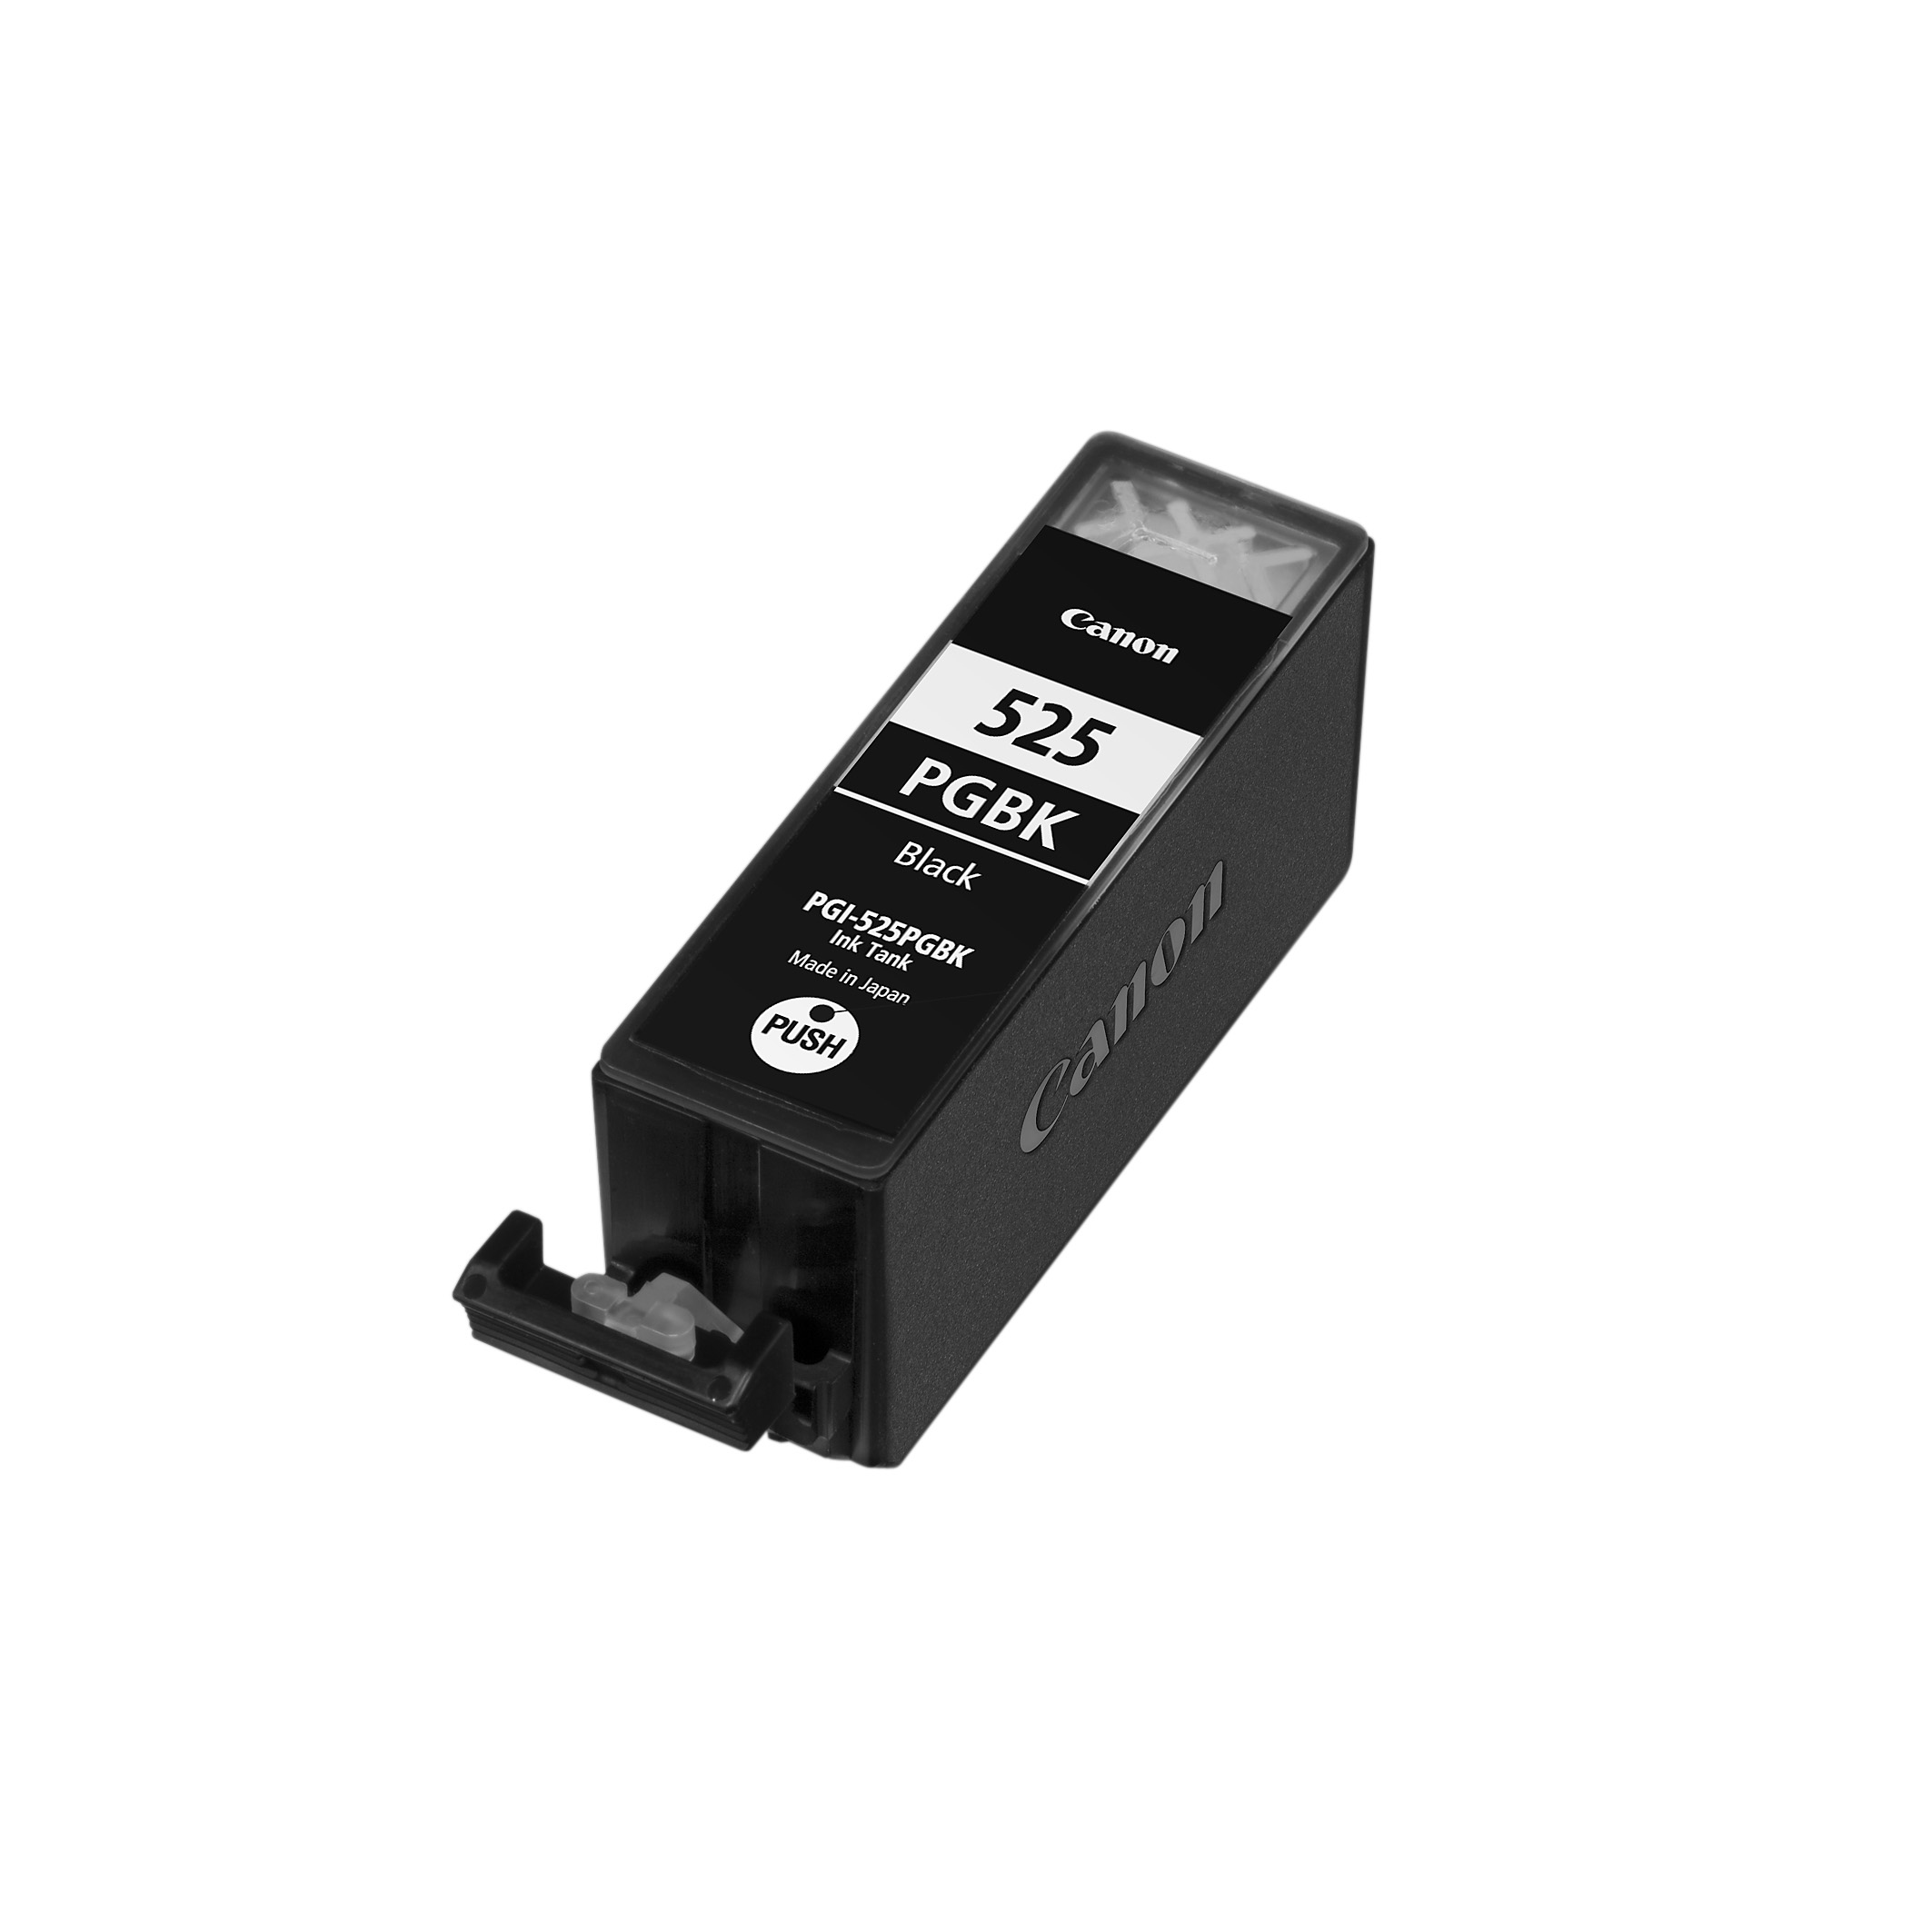 4529b001 canon Pgi-525 Black Ink Cartridge - AD01